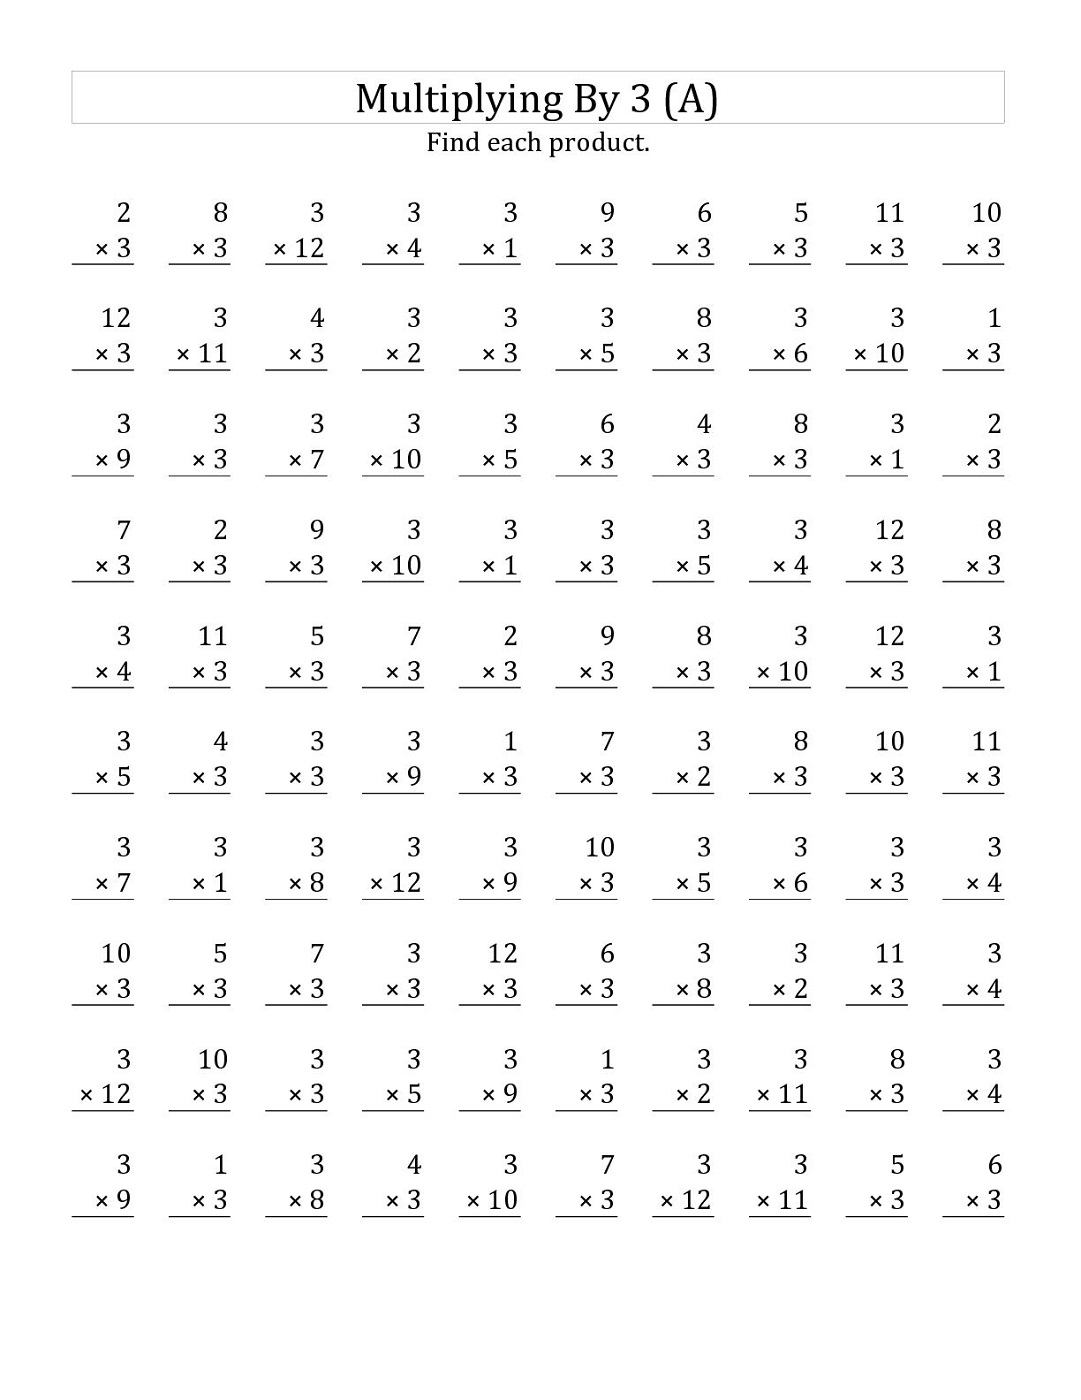 Multiply By 3 Worksheet